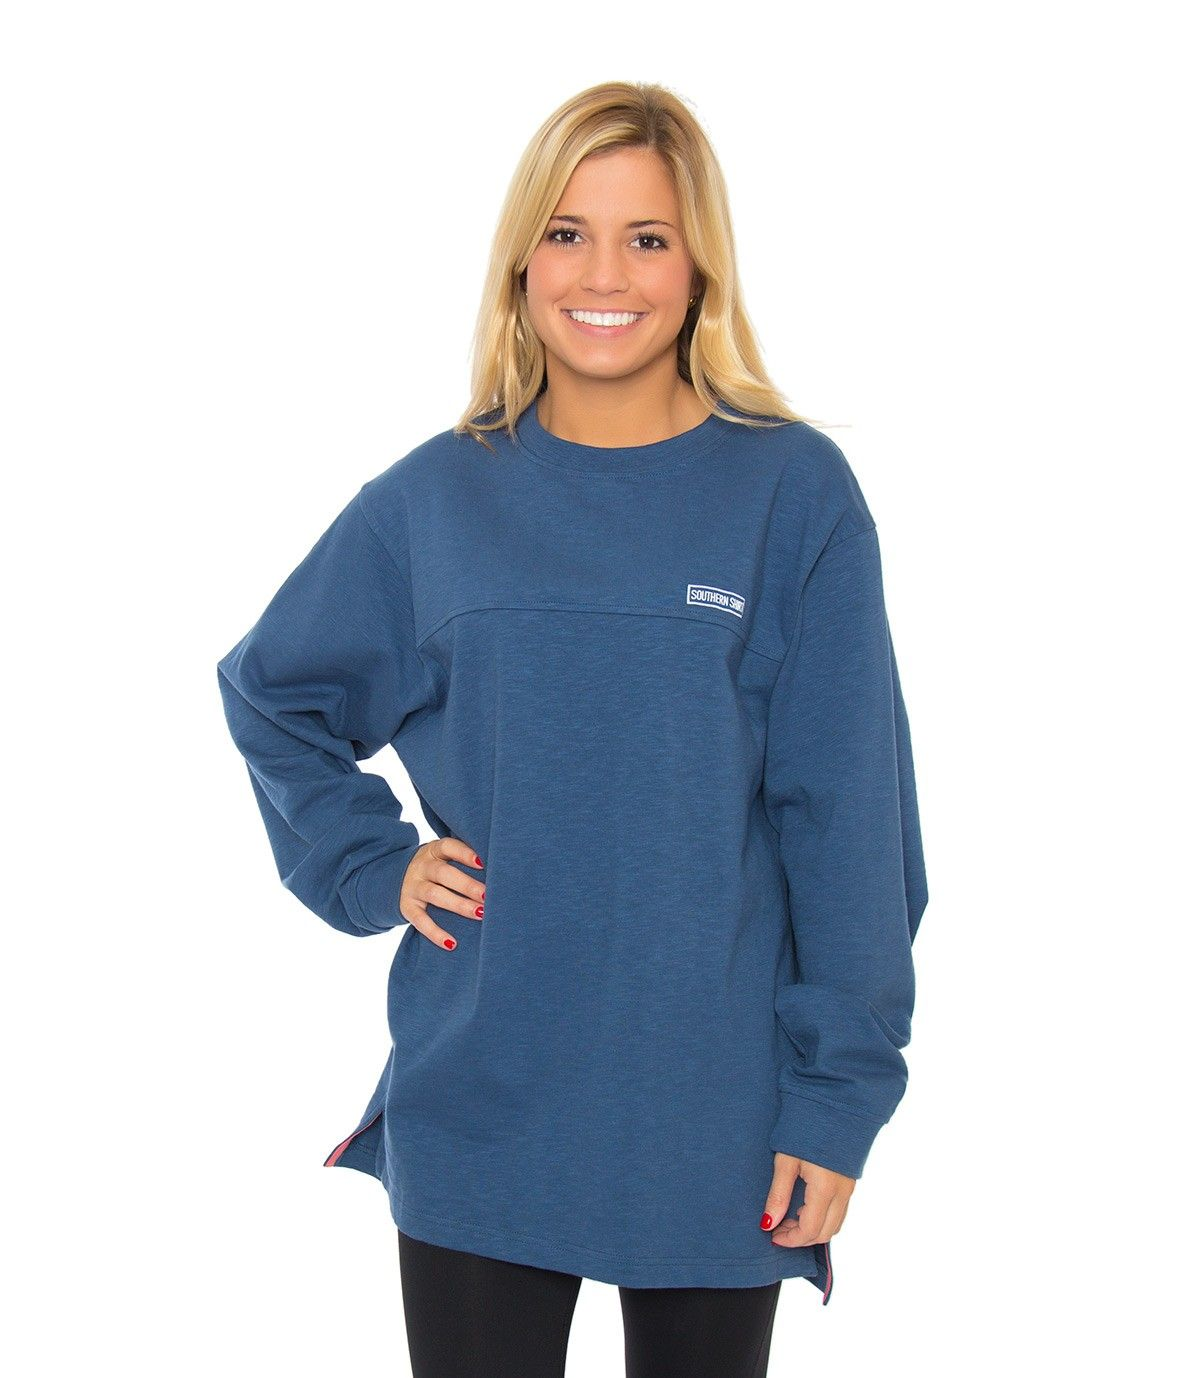 DearSouthernShirt Cotton Club Pullover - Sweatshirts & Pullovers ...